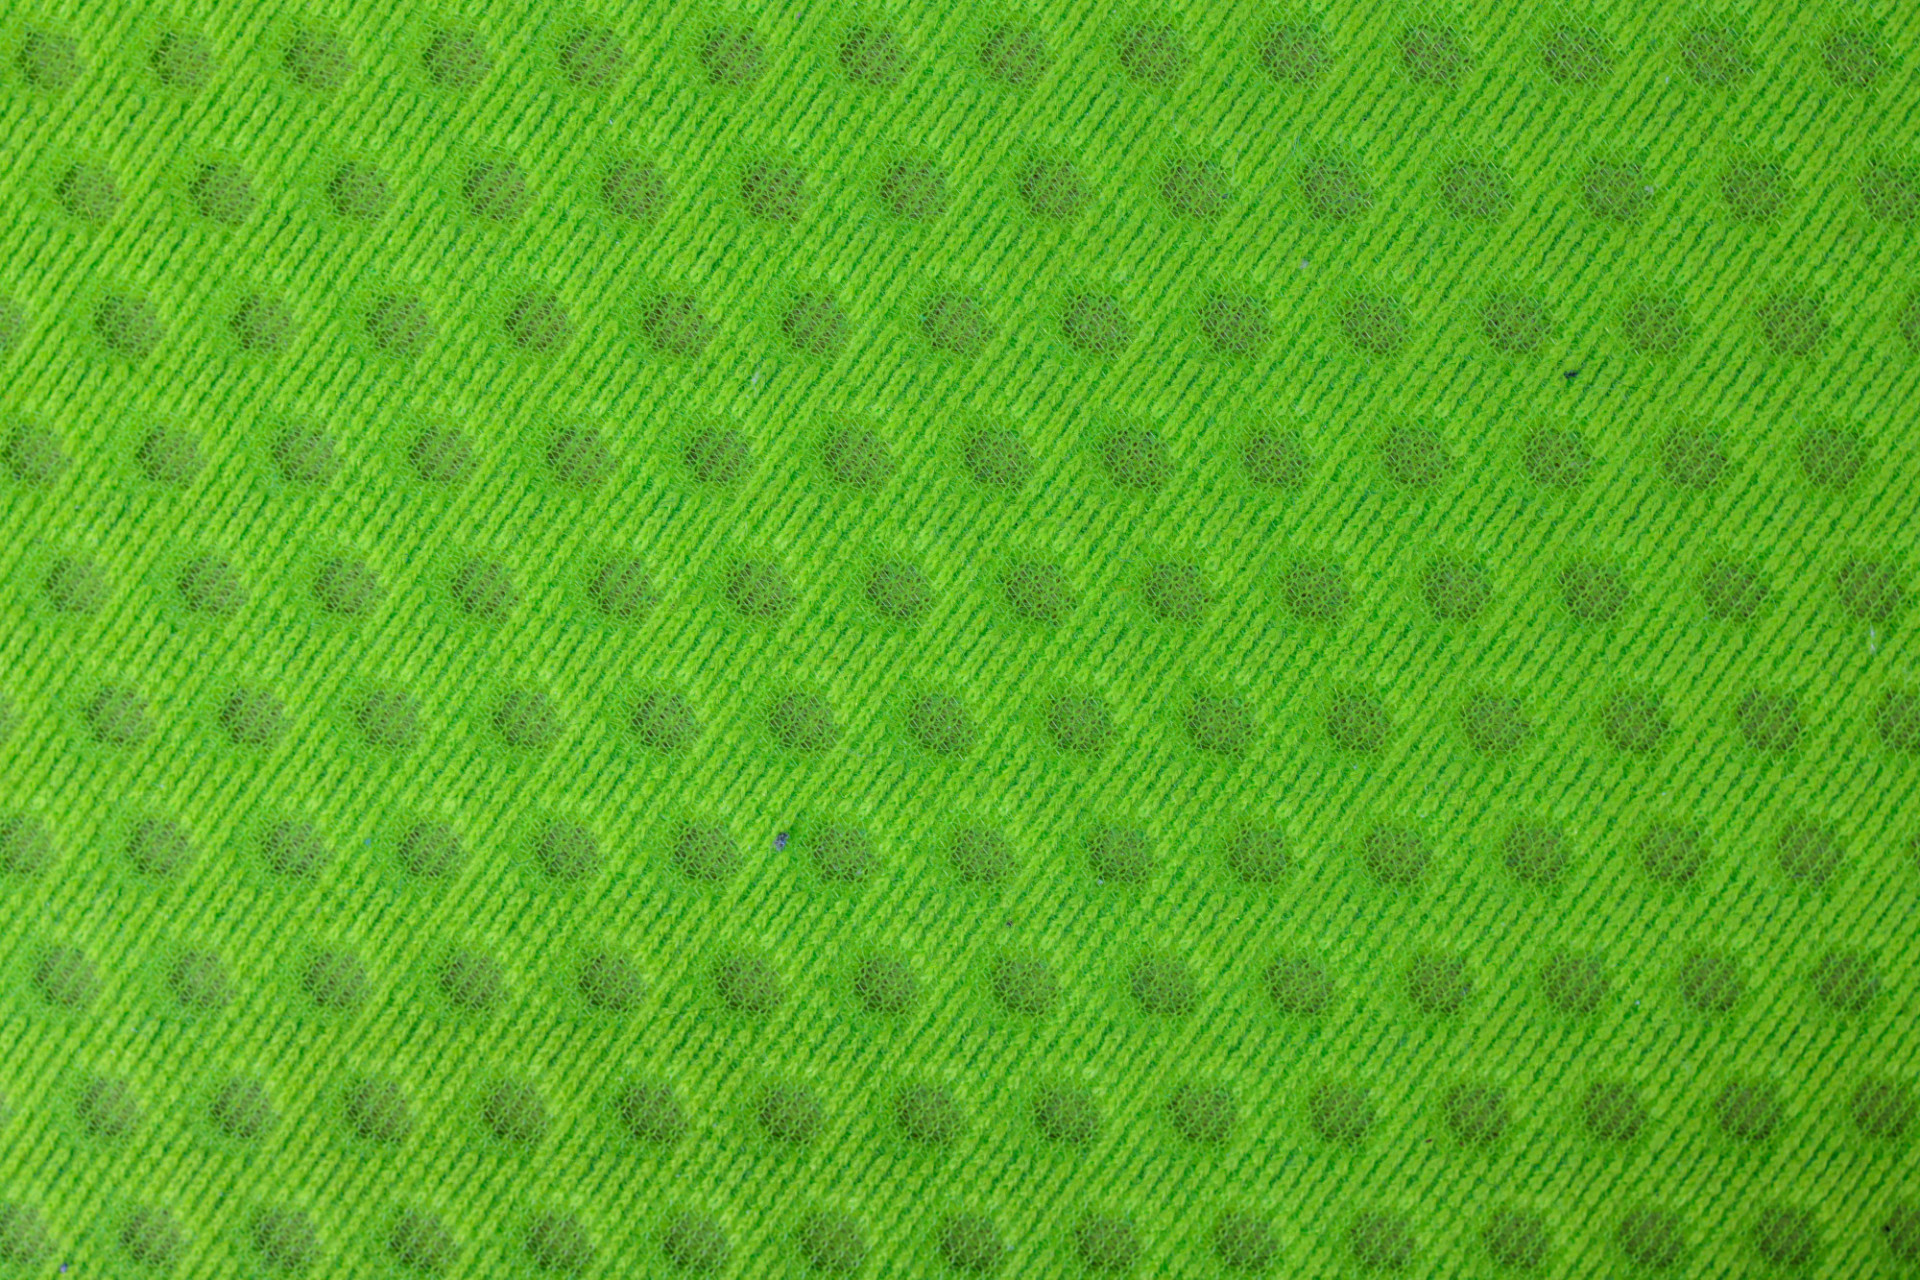 Green dotted fabric texture